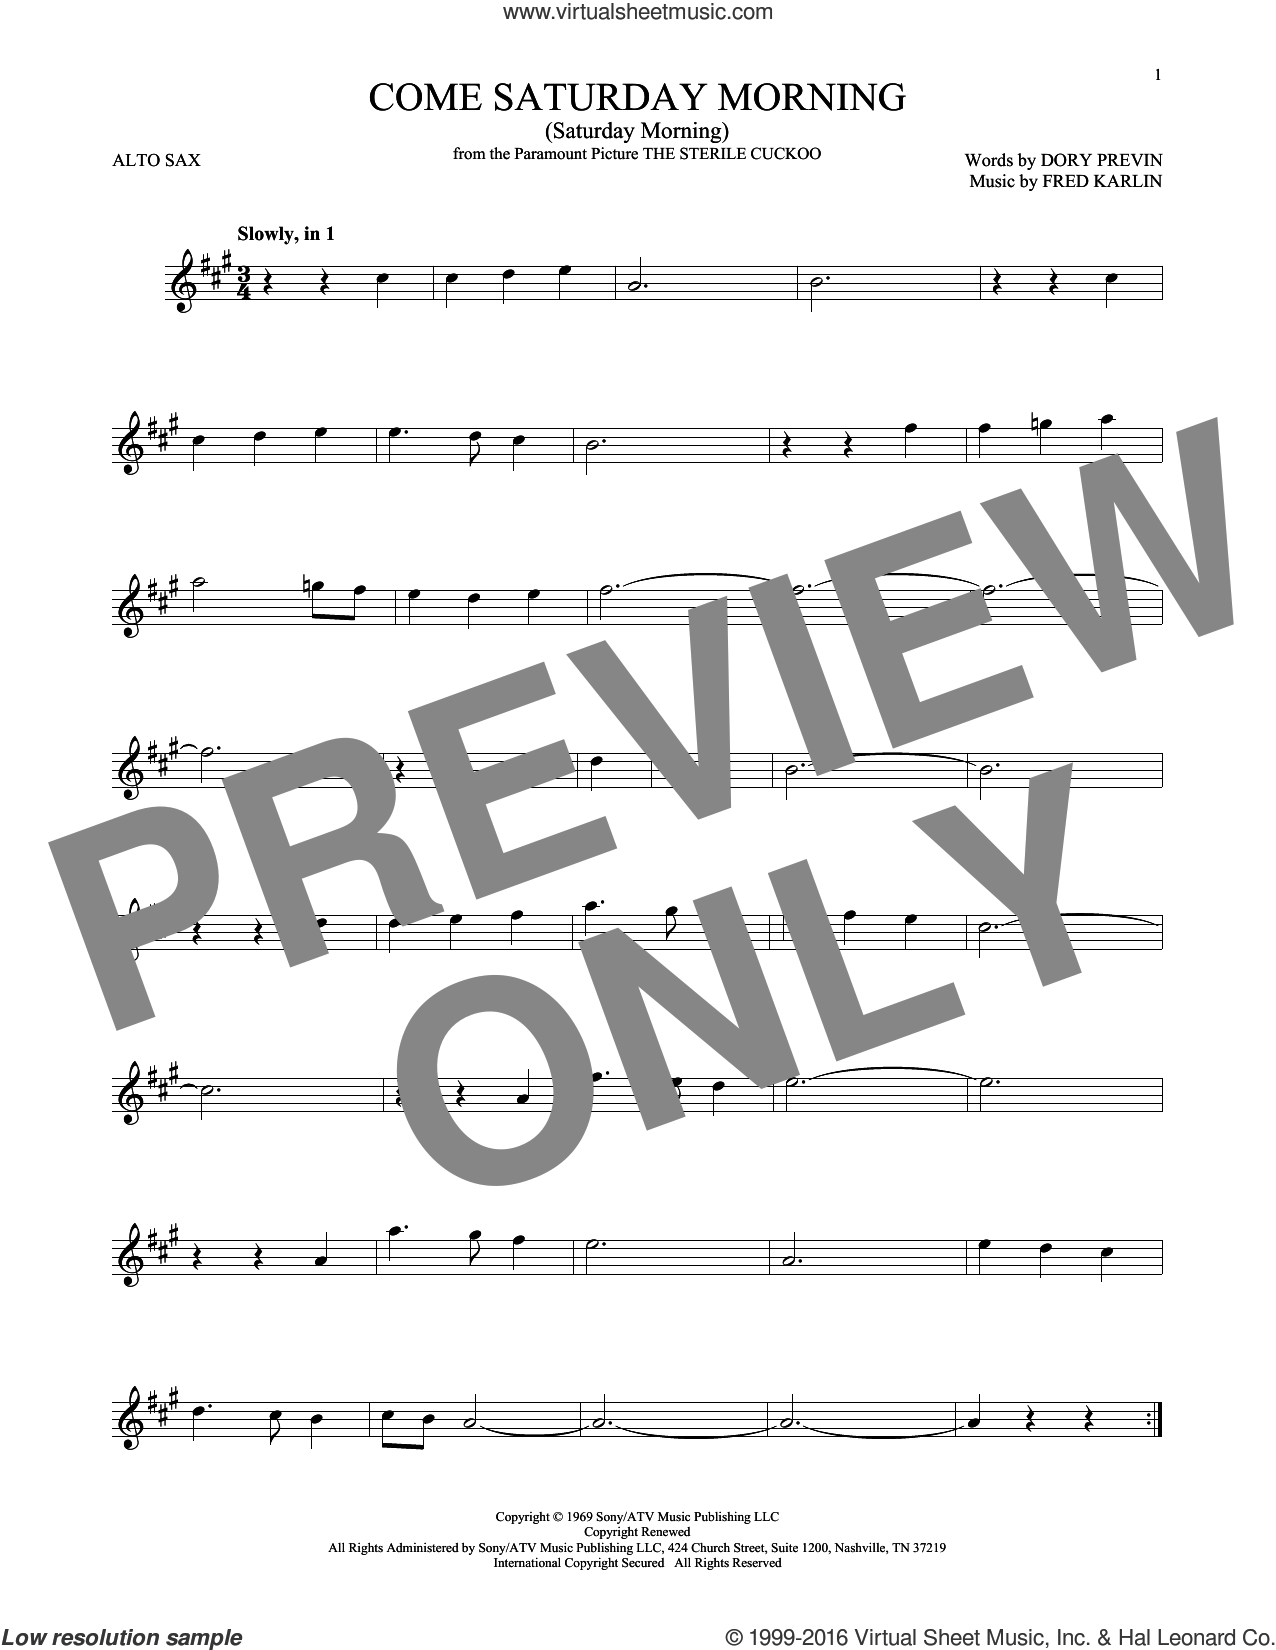 Come Saturday Morning (Saturday Morning) sheet music for alto saxophone solo by Dory Previn and Fred Karlin, intermediate skill level